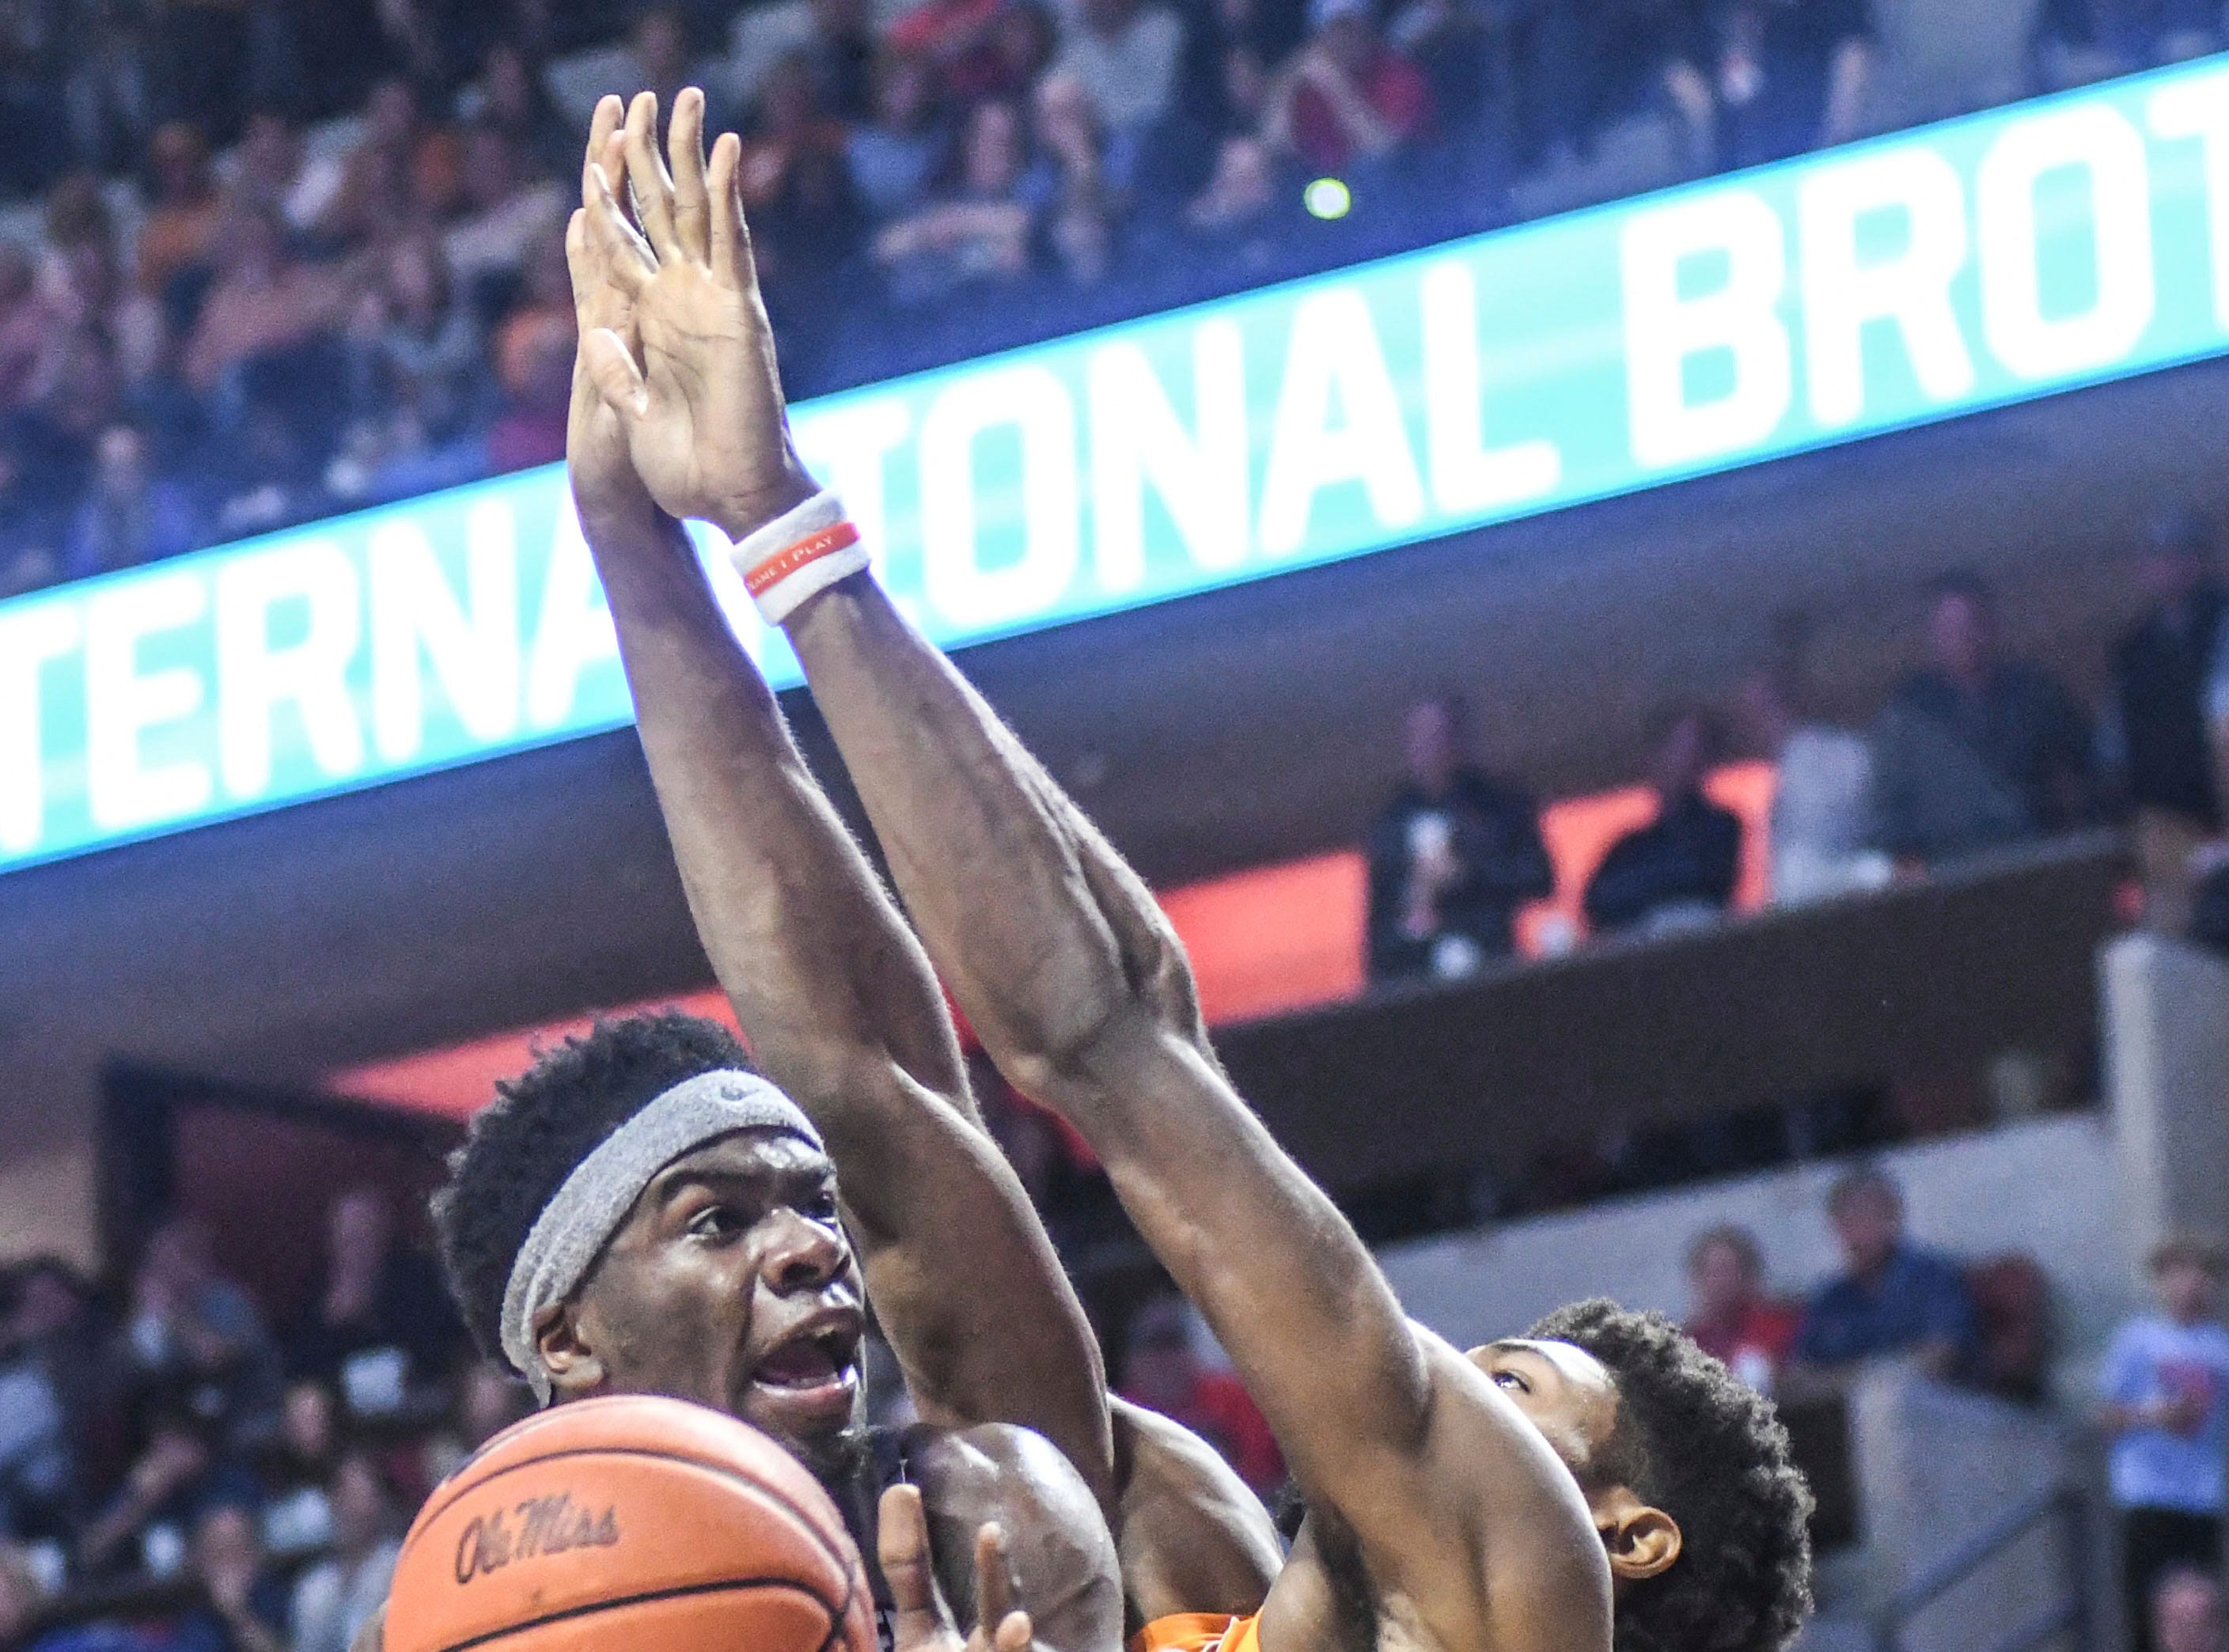 Mississippi guard Terence Davis (3) shoots against Tennessee's Kyle Alexander (11) during the first half of an NCAA college basketball game, Wednesday, Feb. 27, 2019 in Oxford, Miss. (Bruce Newman/The Oxford Eagle via AP)